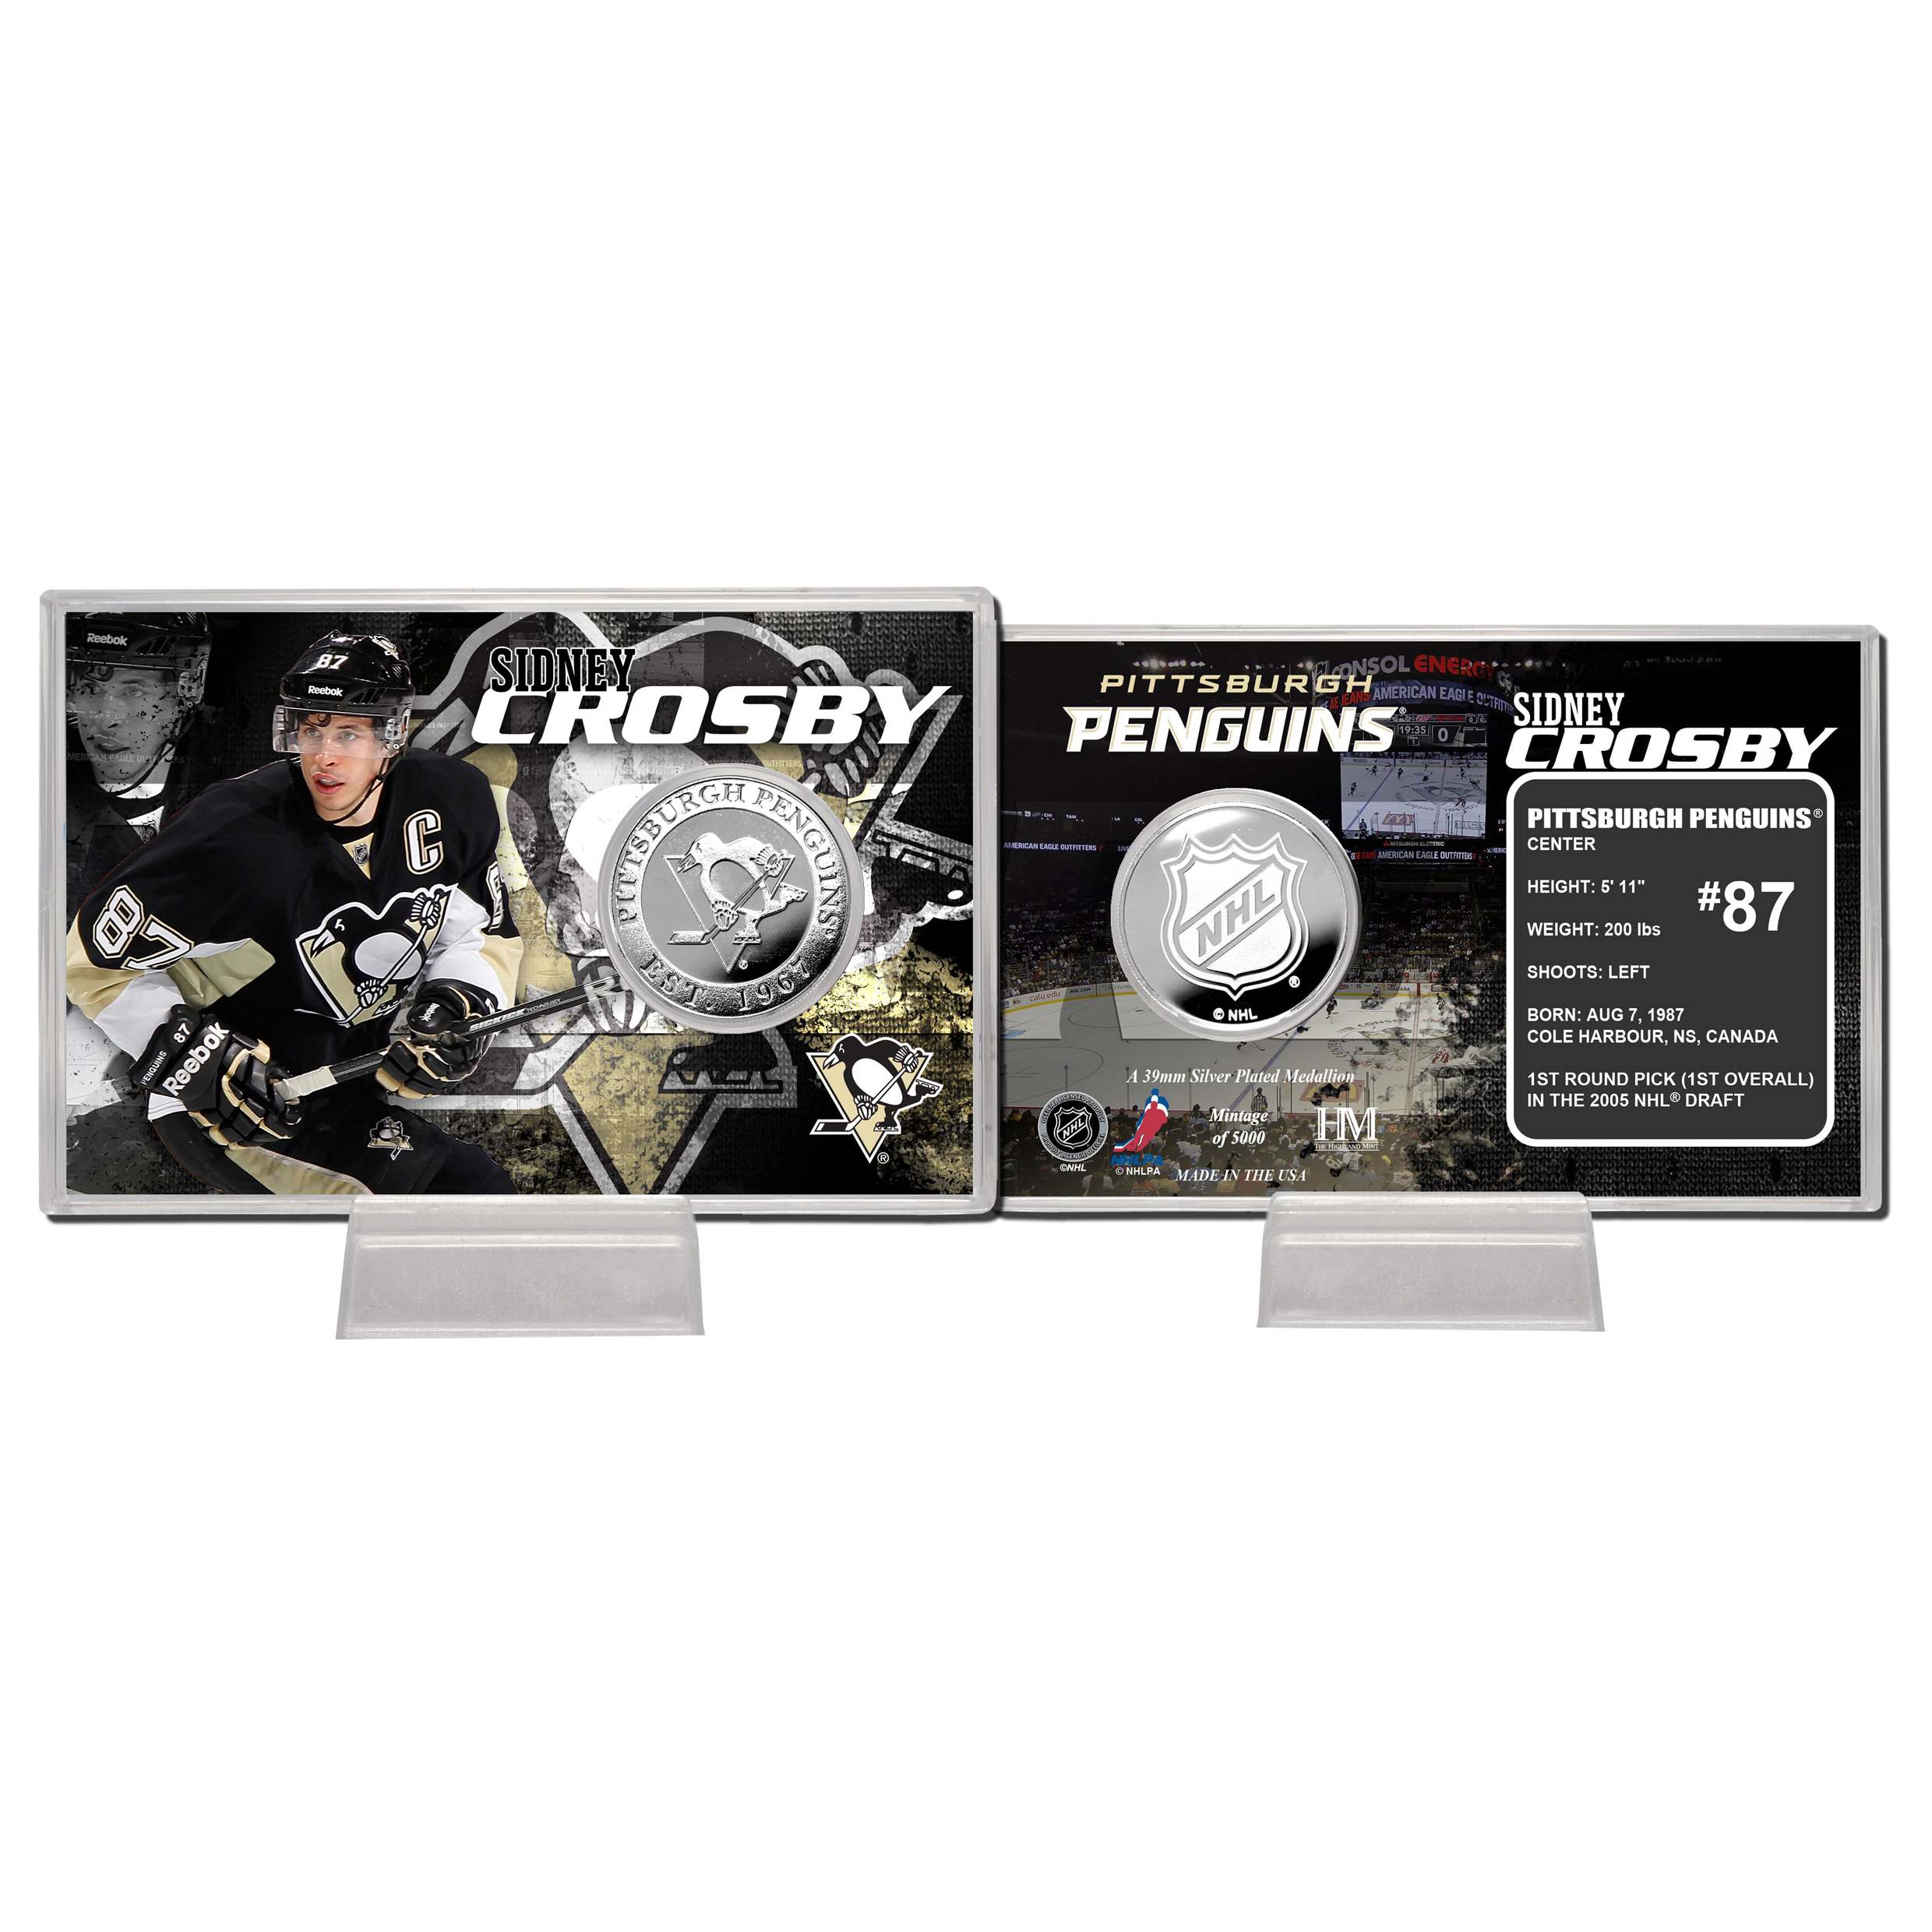 Pittsburgh Penguins Sidney Crosby Silver Coin Card